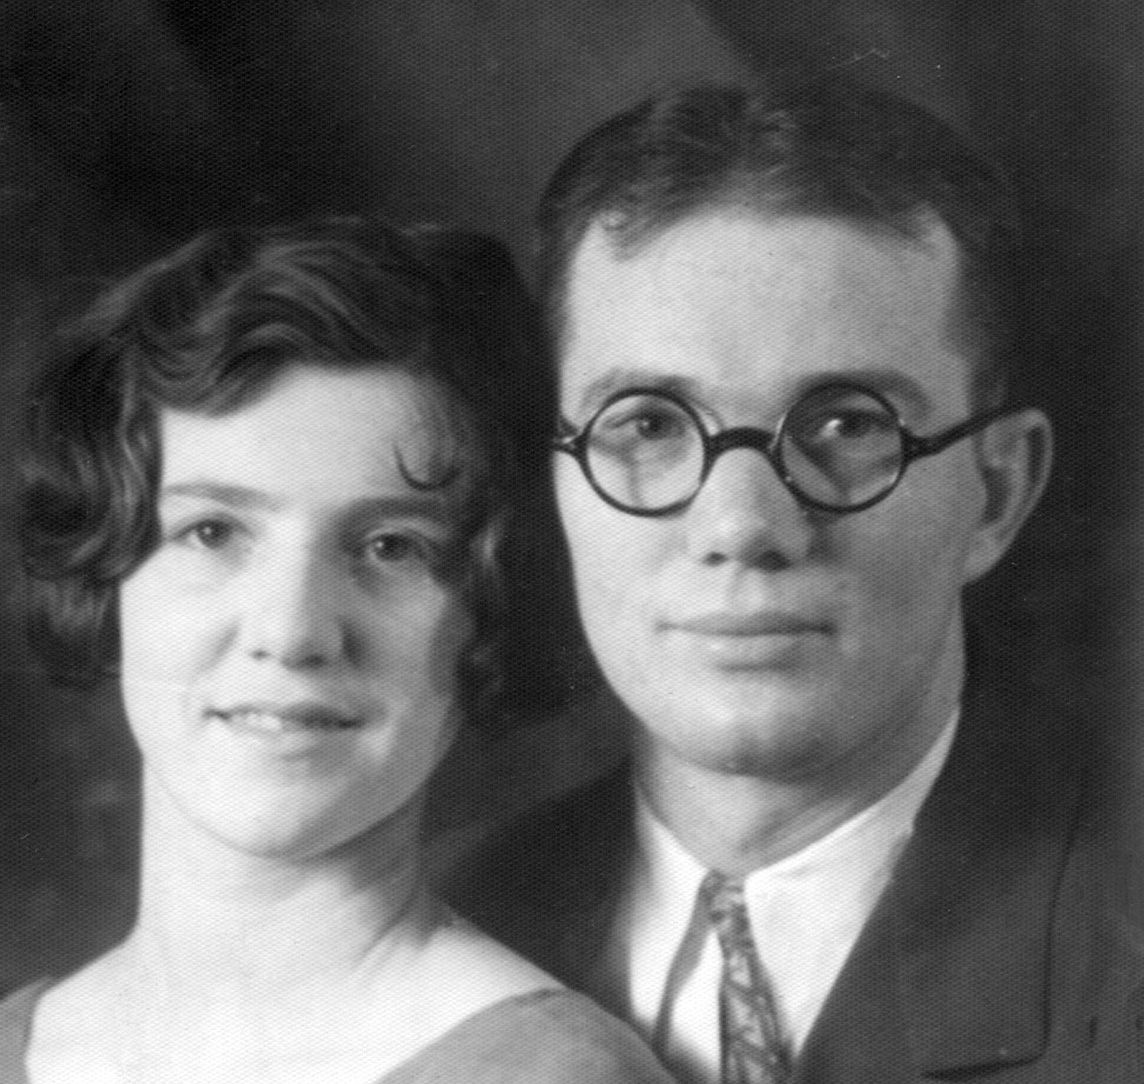 My Great-Granpa's glasses get me everytime. What a look! Elen Rebecca Parry - Angus Lemmon Allred - Photos and Stories — FamilySearch.org